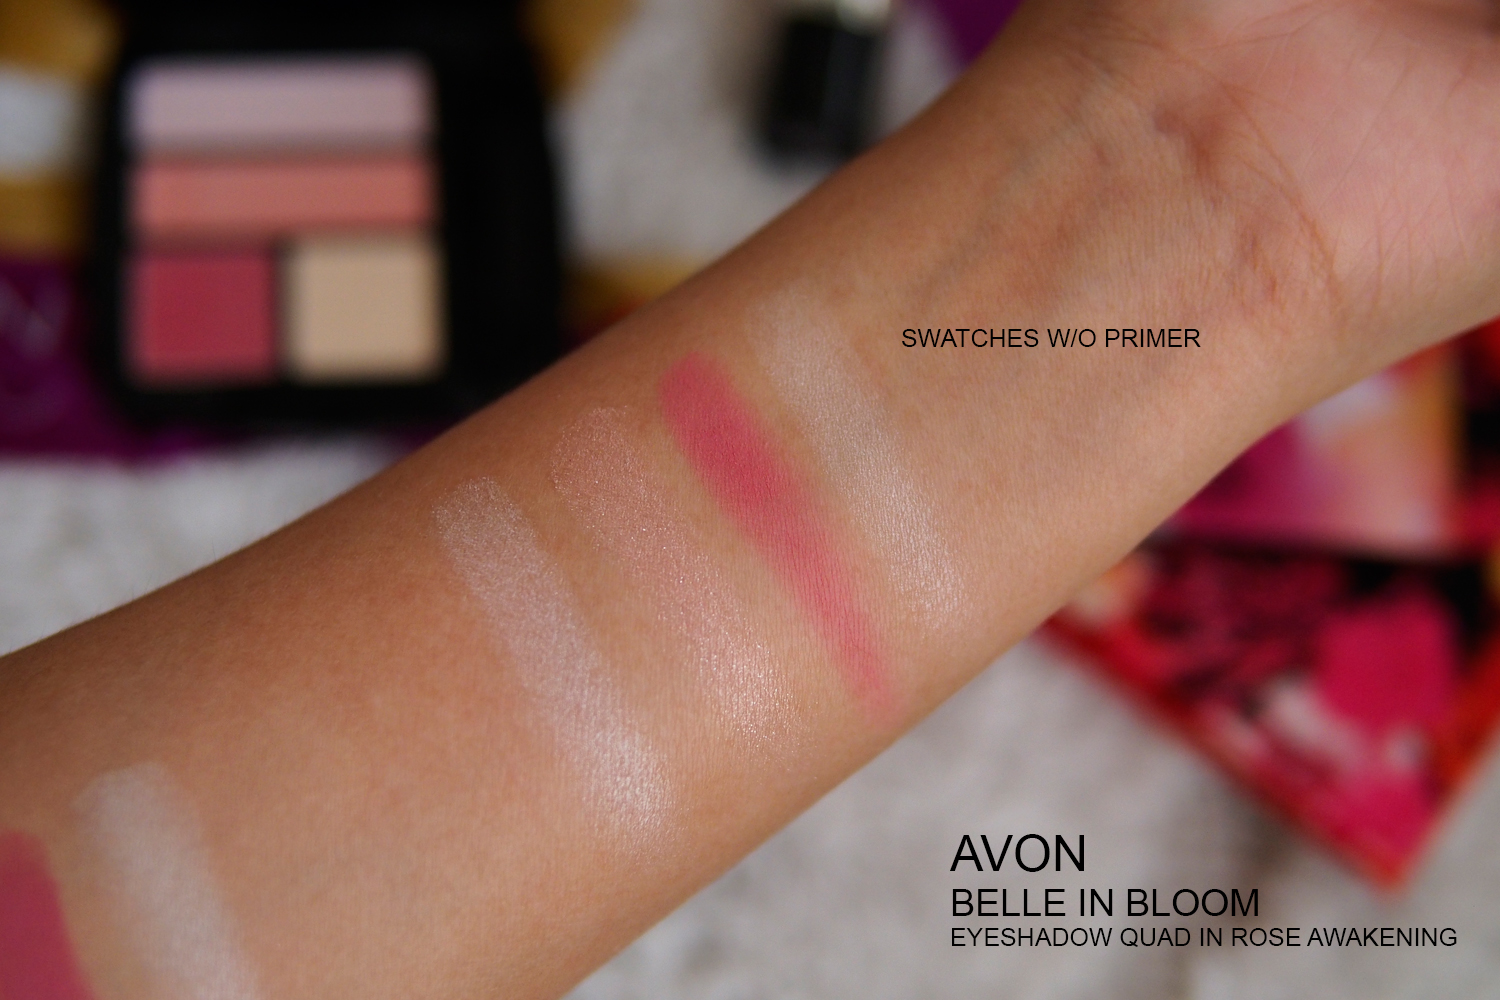 AVON BELLE IN BLOOM EYESHADOW SWATCHES